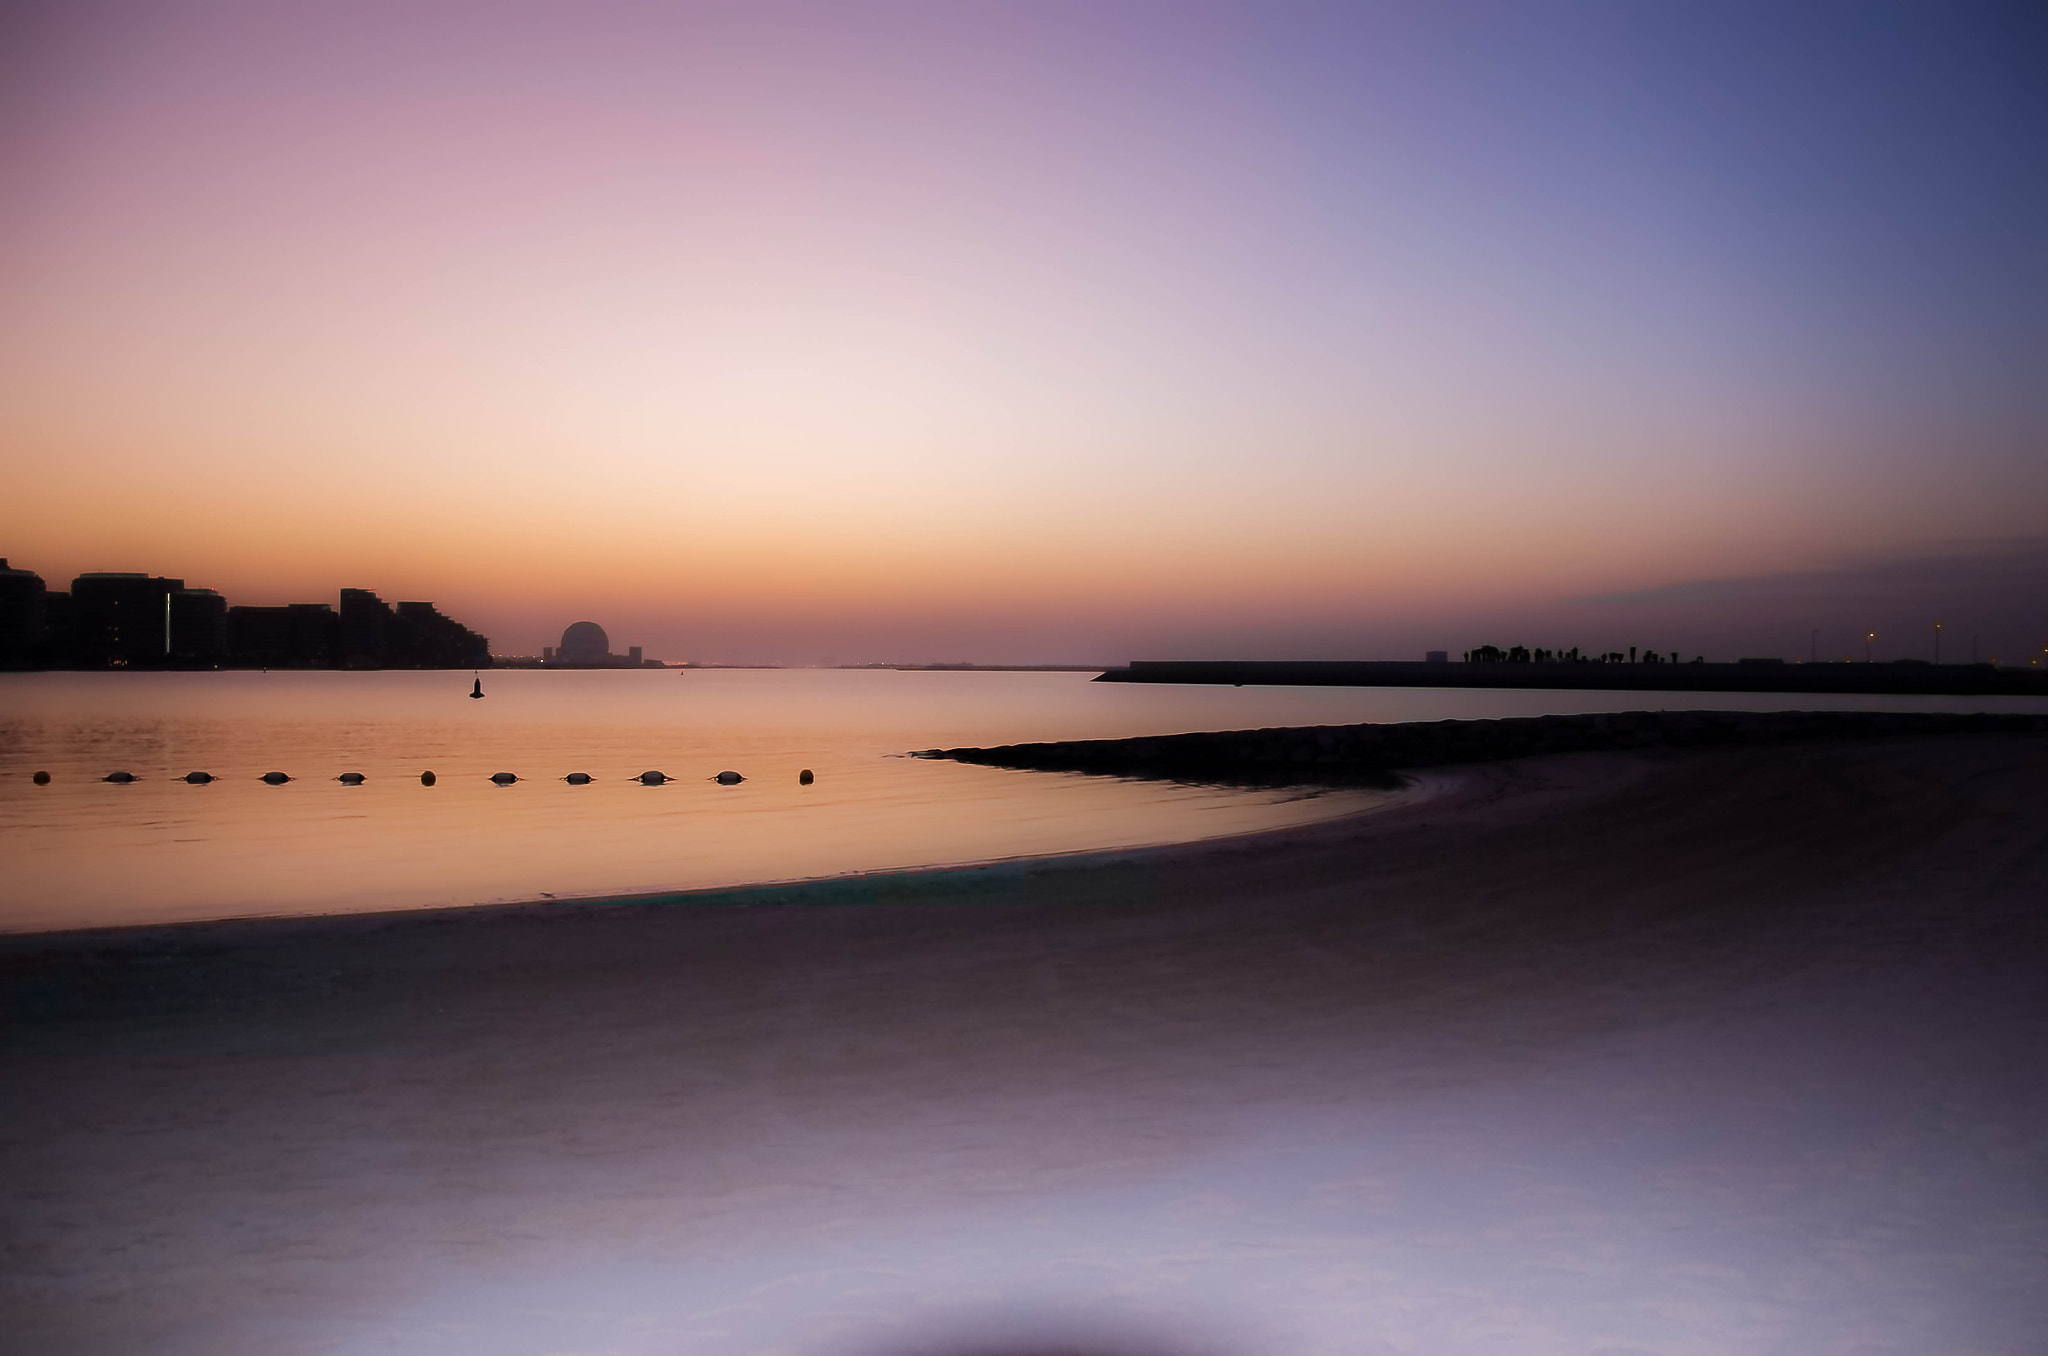 Photograph Beach by julian john on 500px